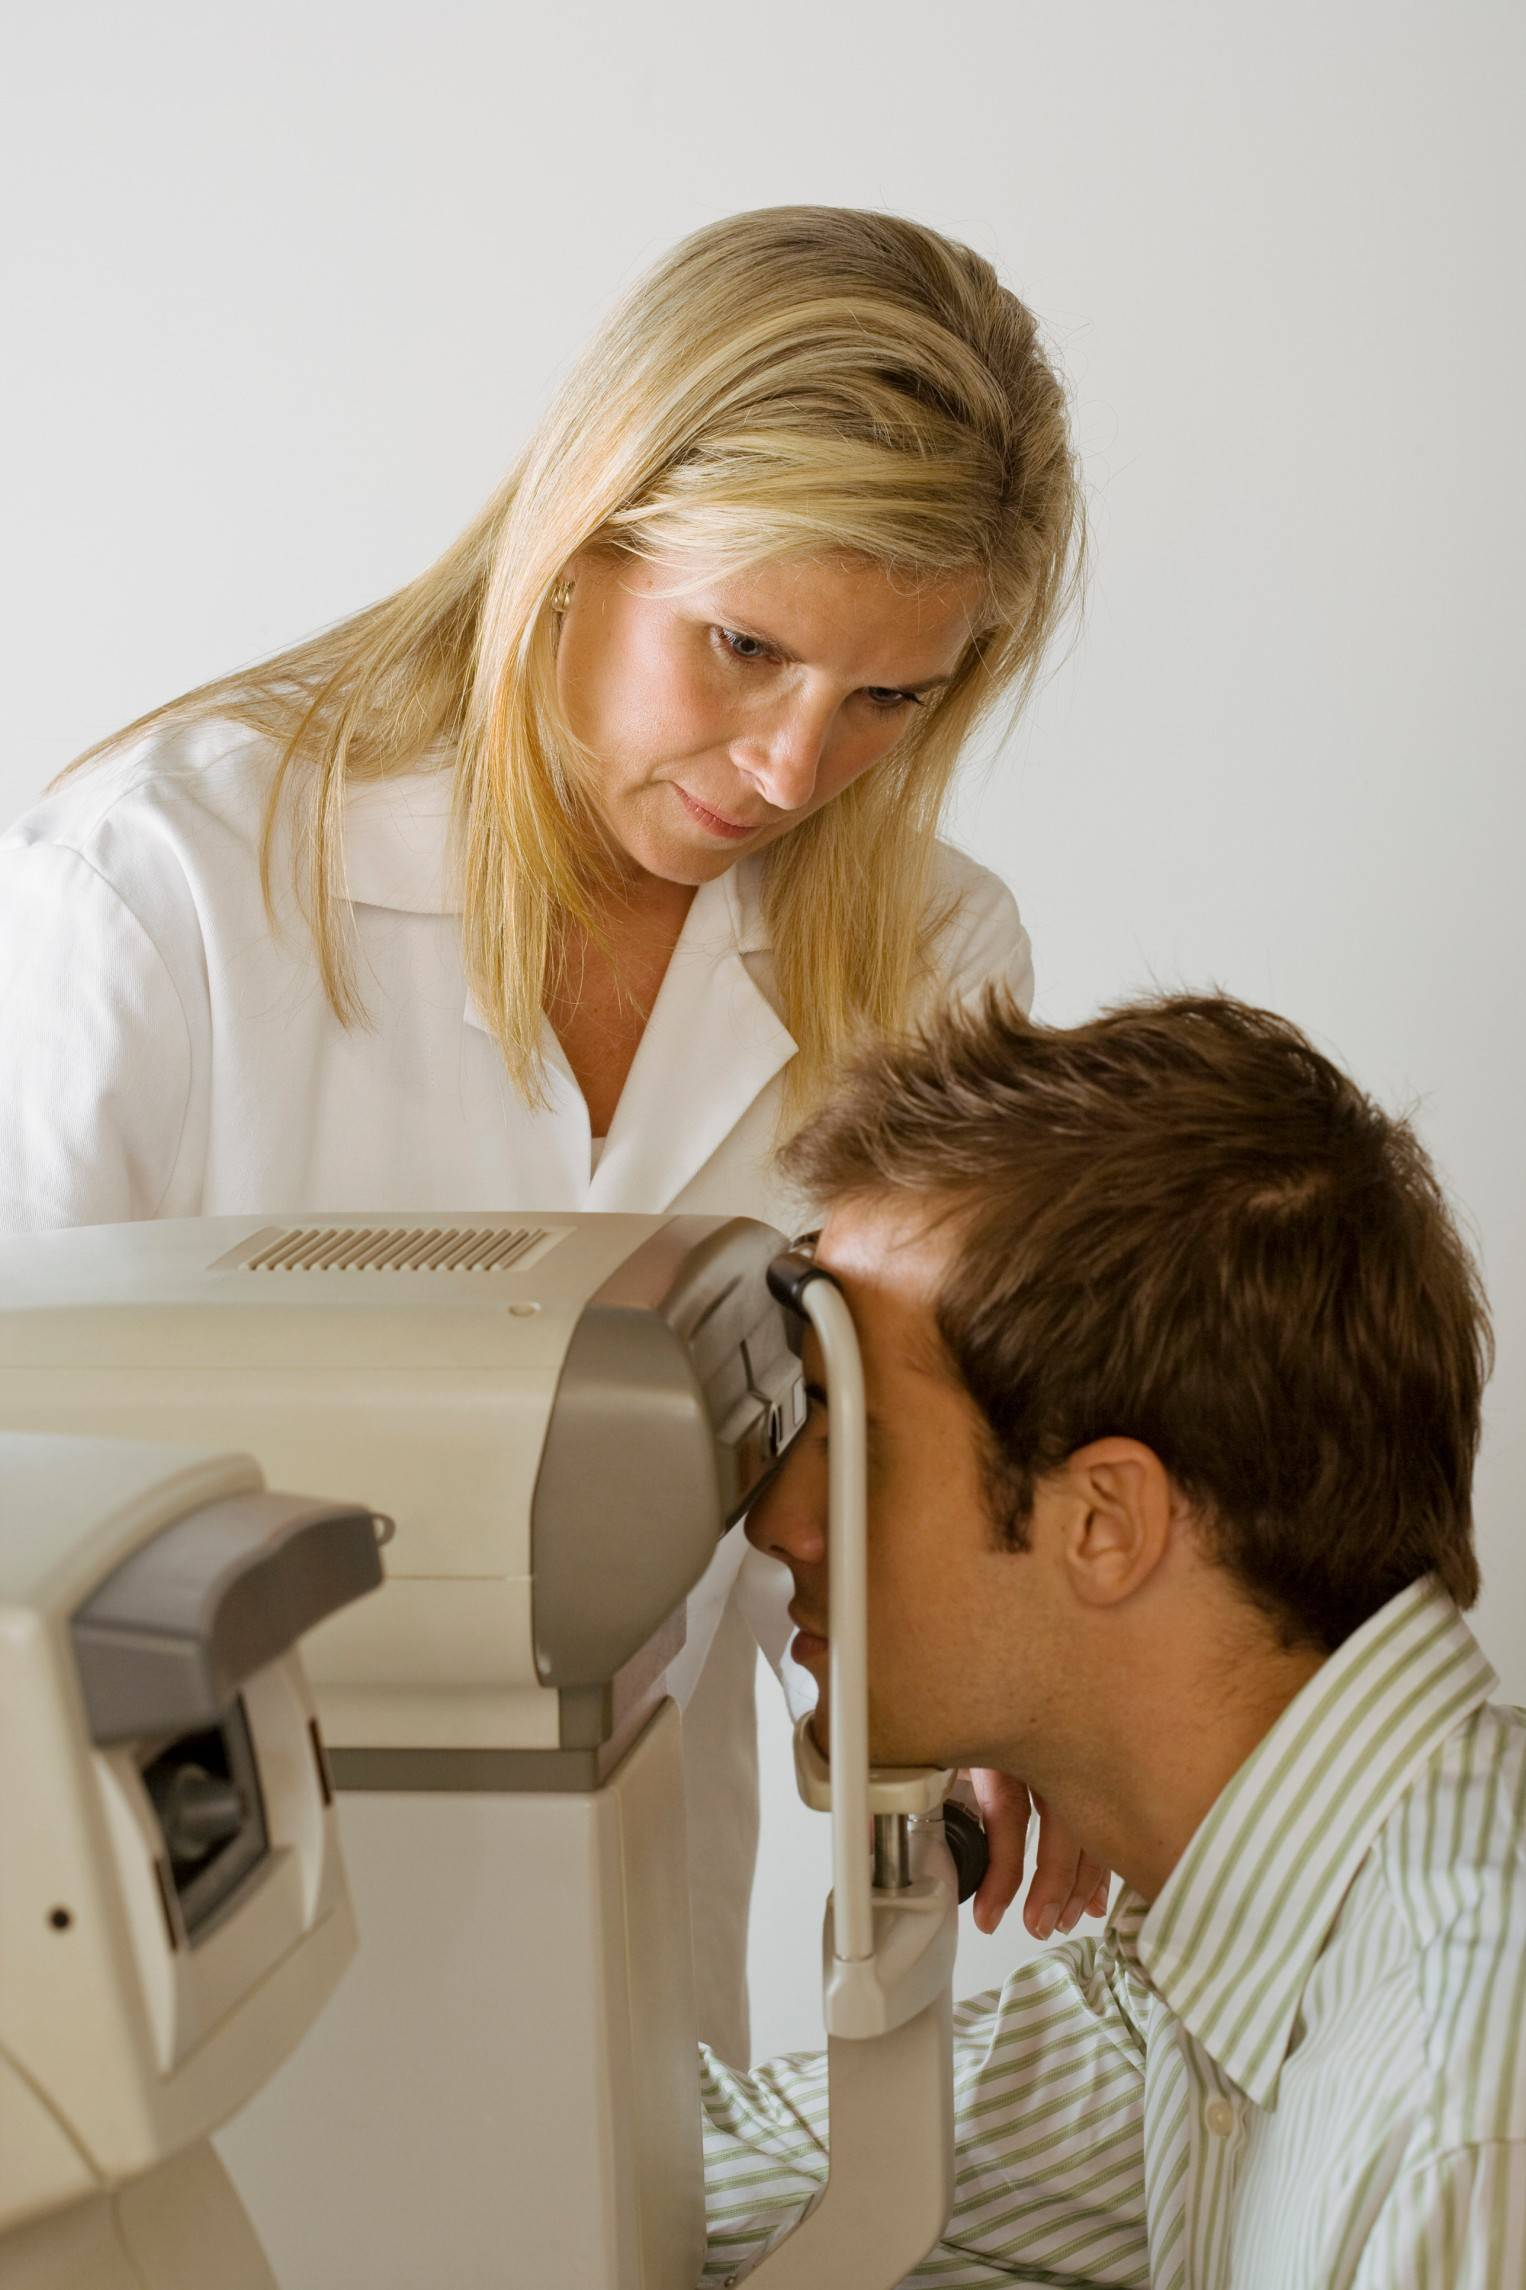 Regular eye exams can help catch vision issues. Especially with glaucoma, it's important to catch some eye conditions early.